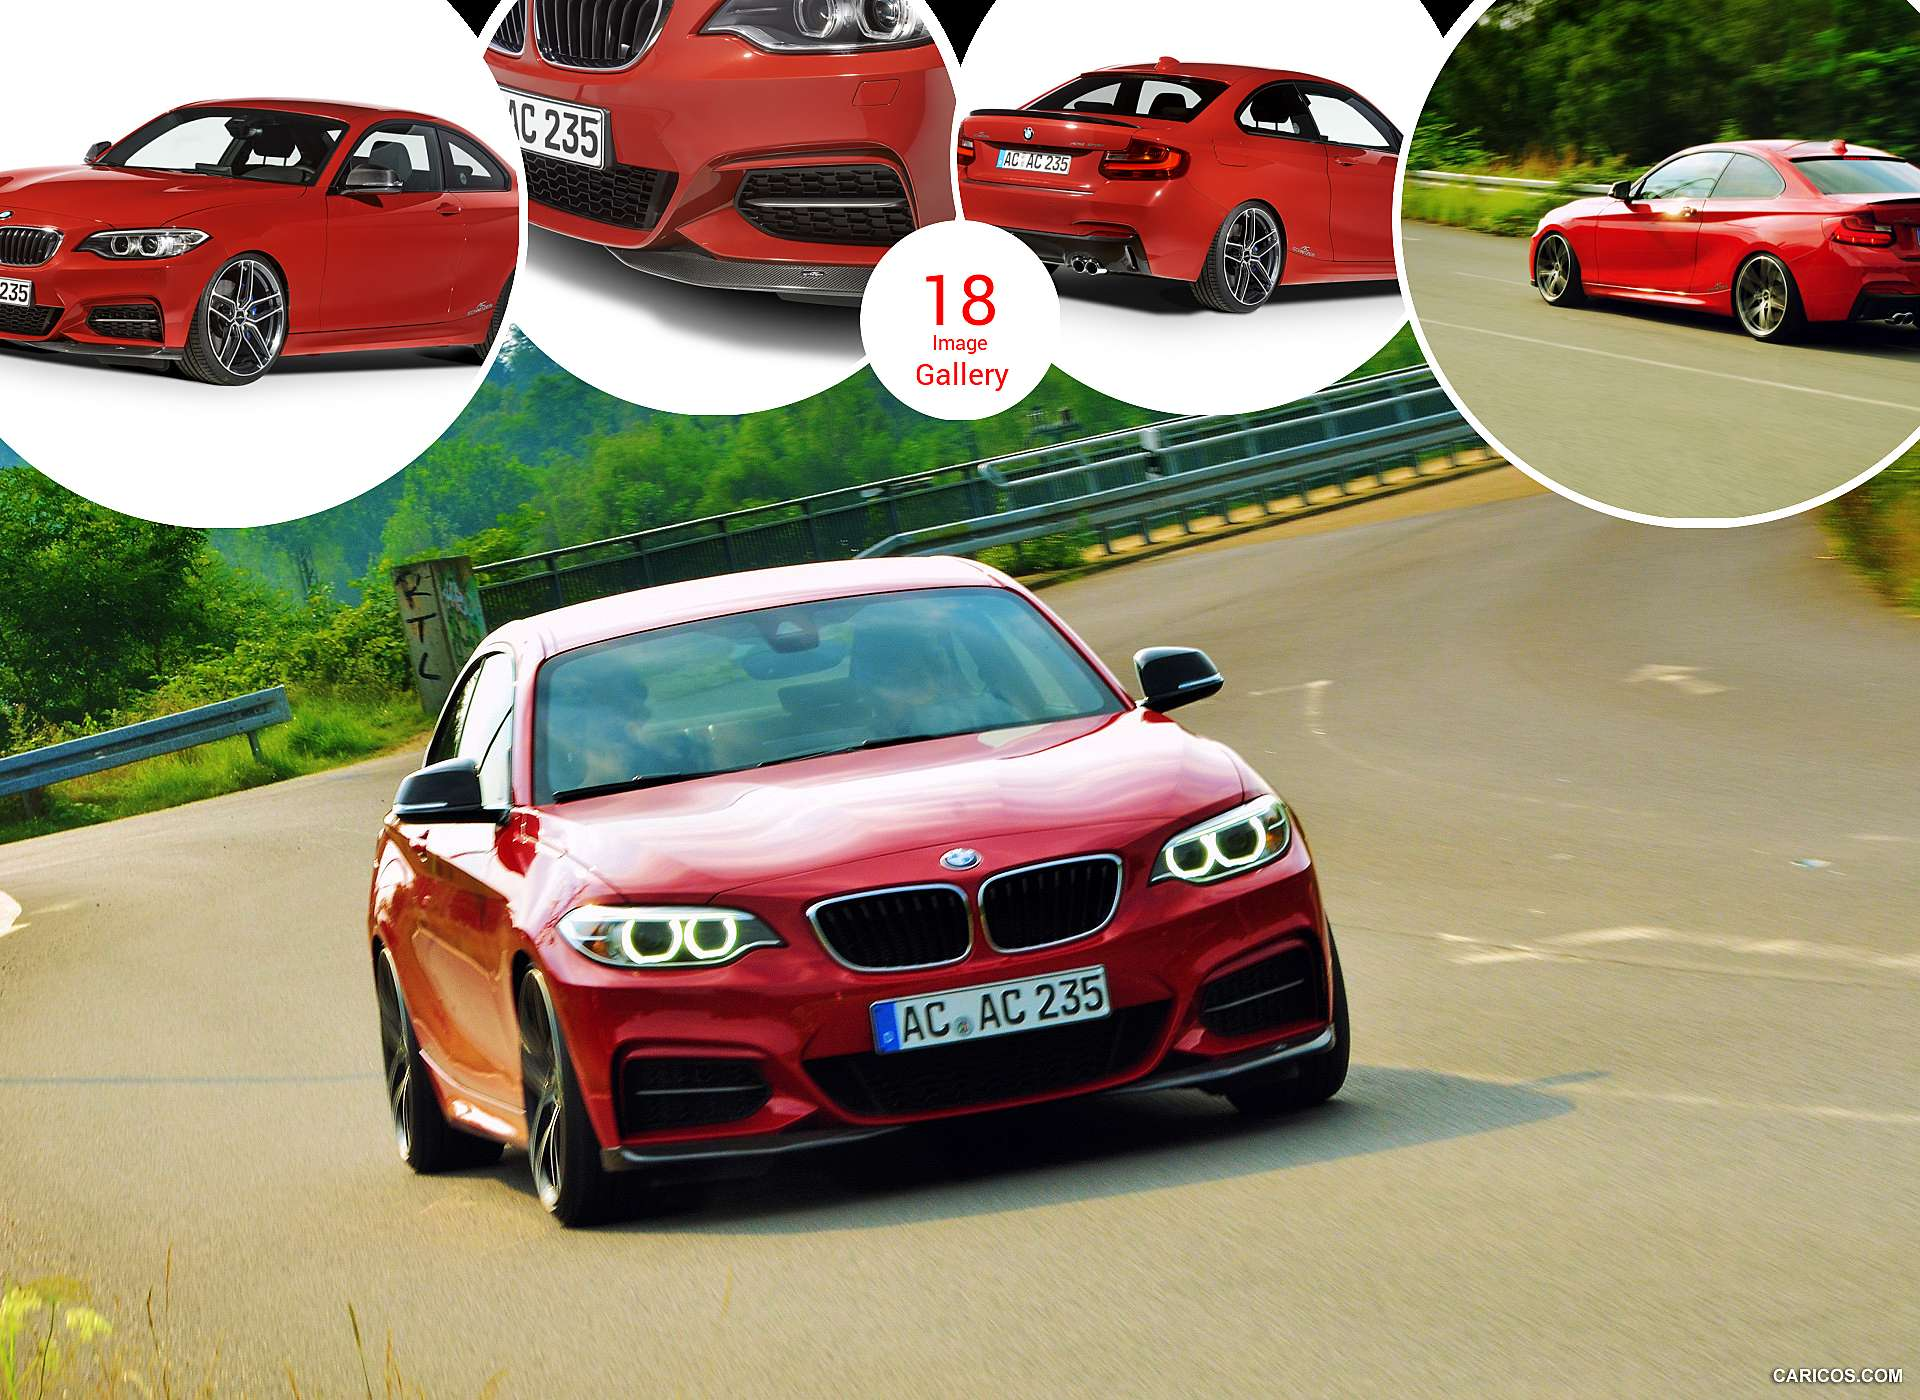 2015 AC Schnitzer BMW 2-Series Coupe